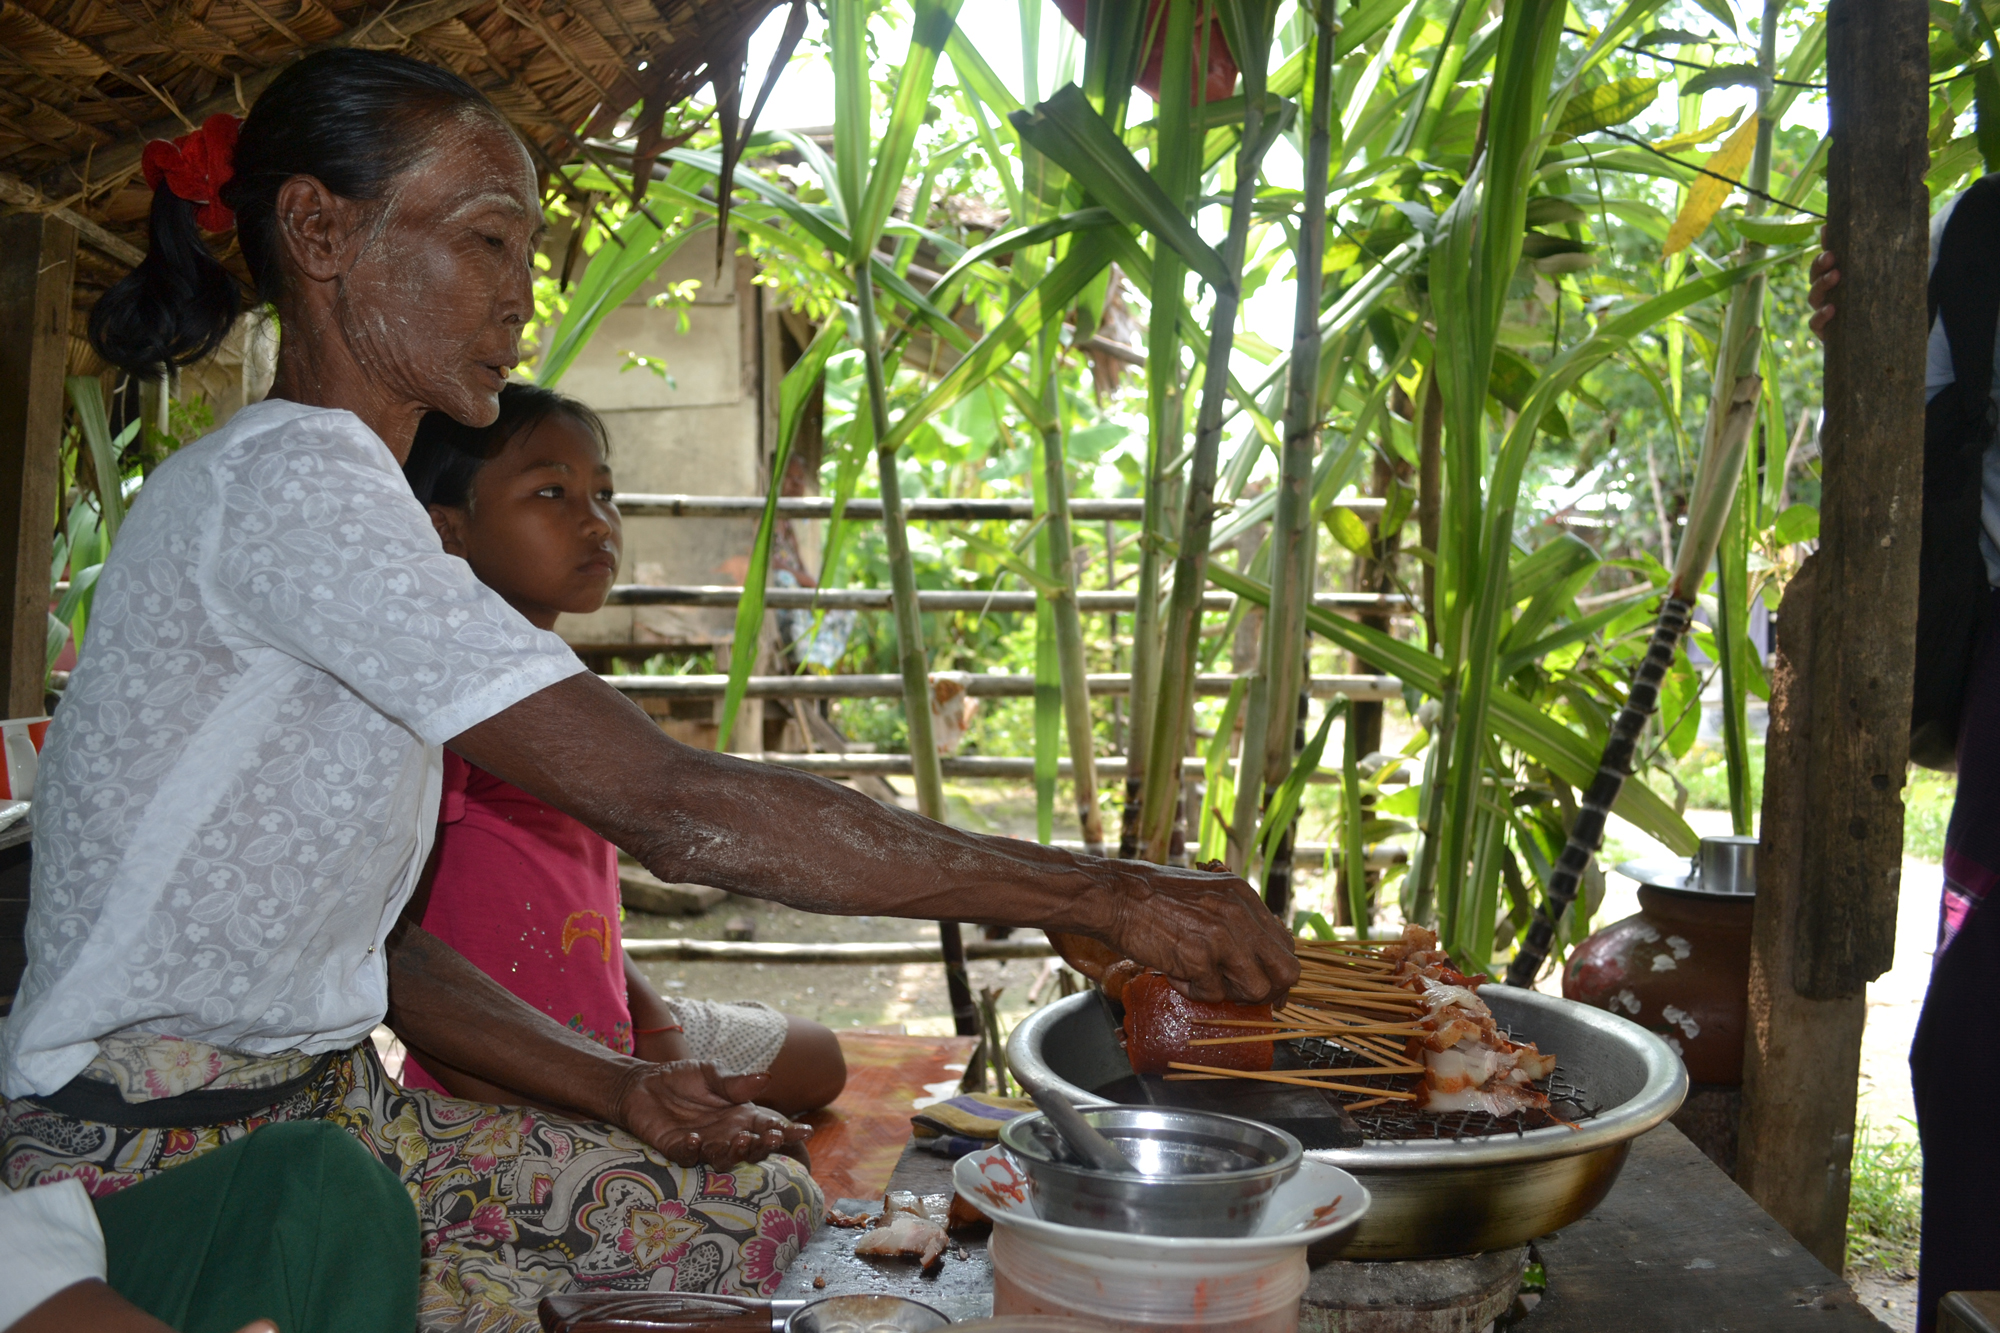 Daw Daw preparing food items she sells to make income